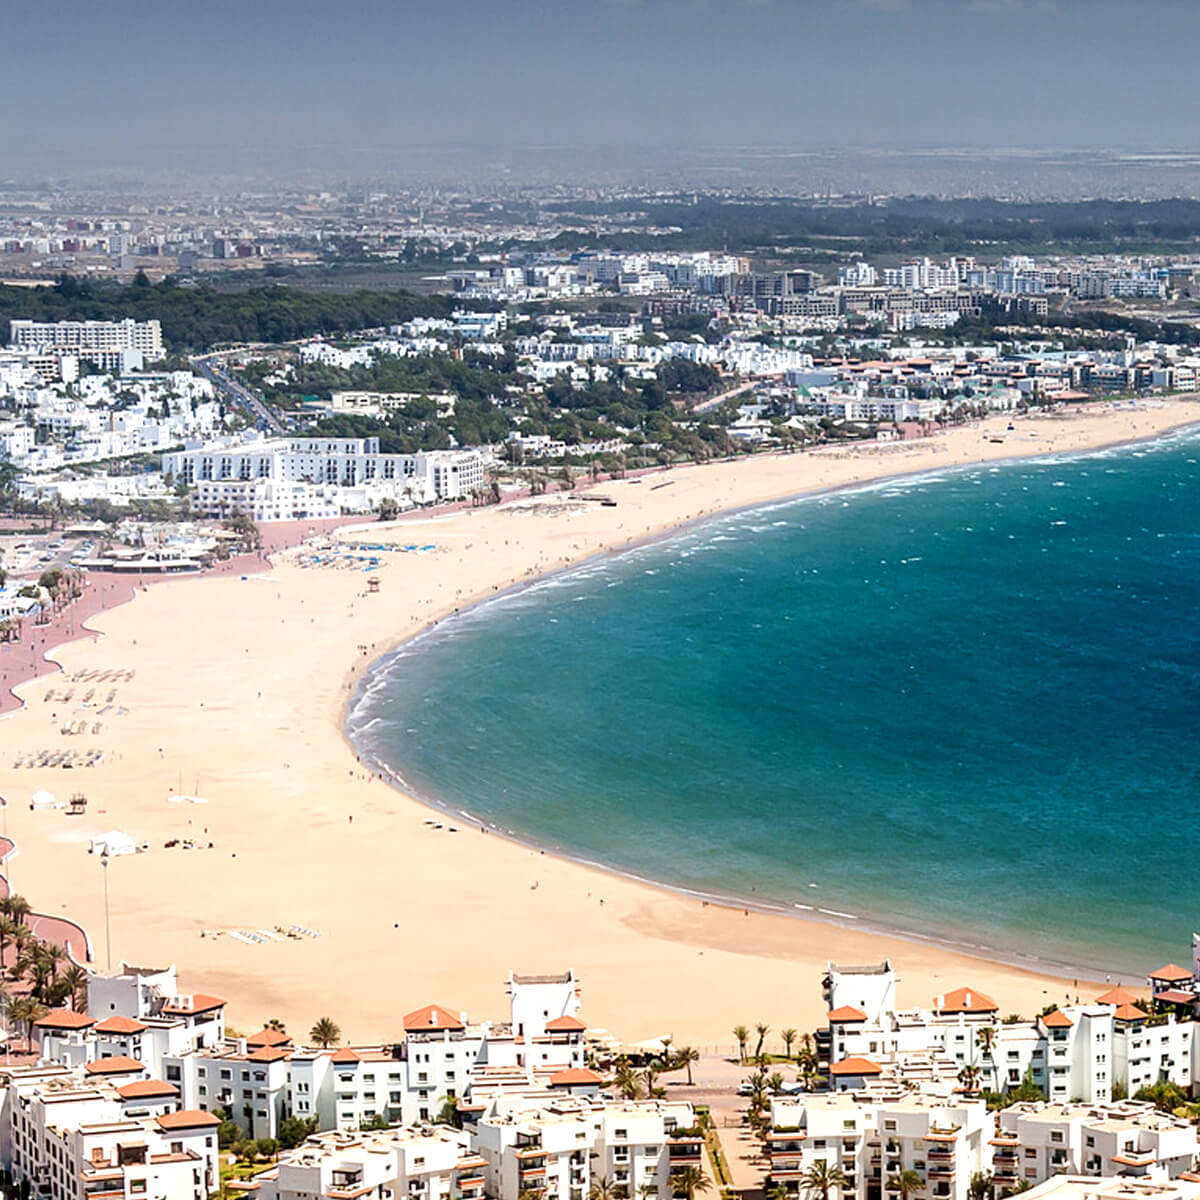 Car Rental 8 Travel Tips Deals Home: Agadir Things To Do, Travel Guide And Visitor Information